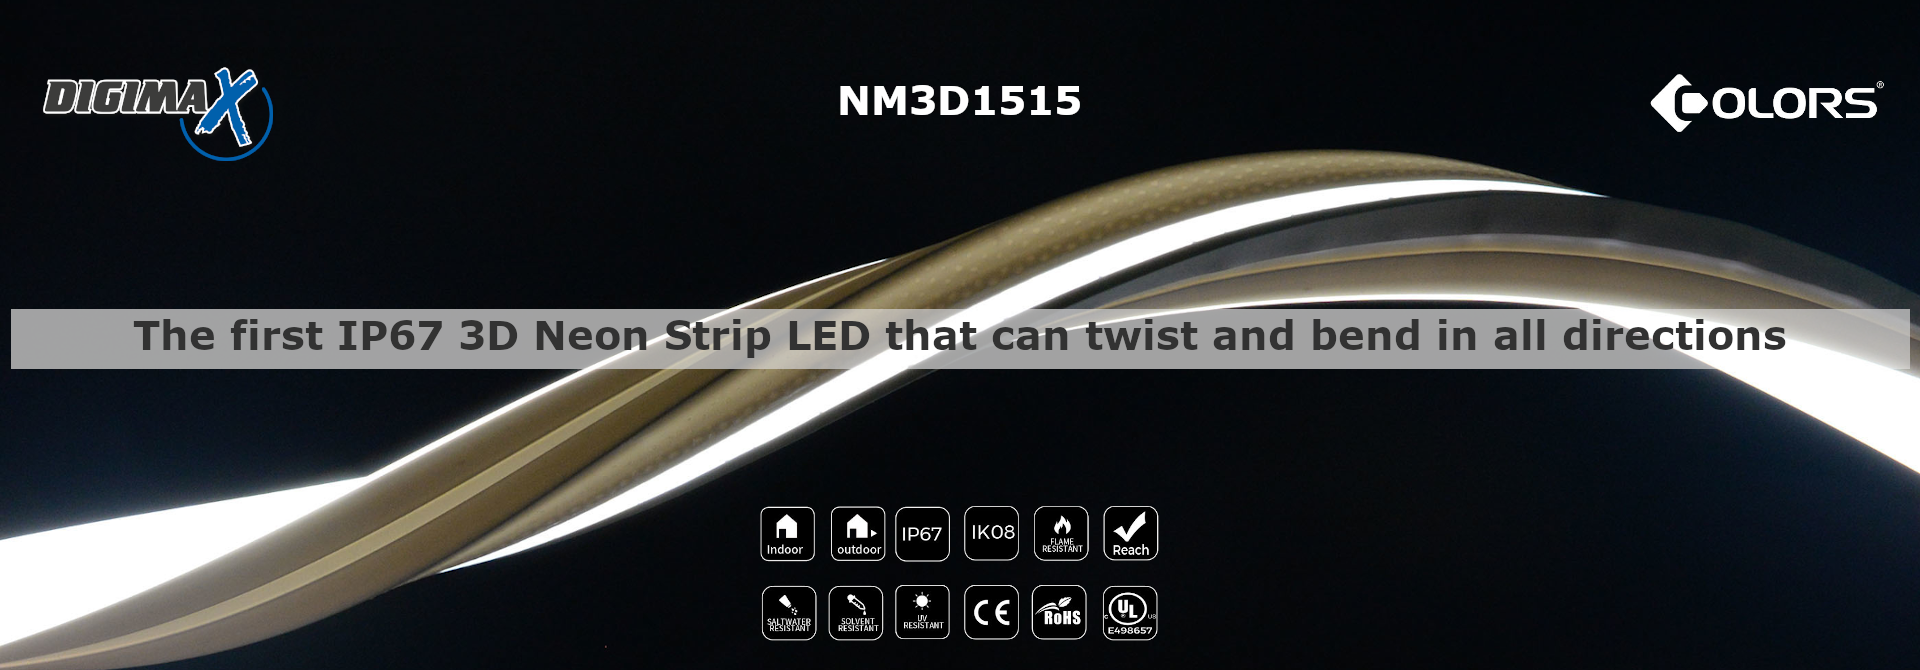 The first IP67 3D Neon Strip LED that can twist and bend in all directions